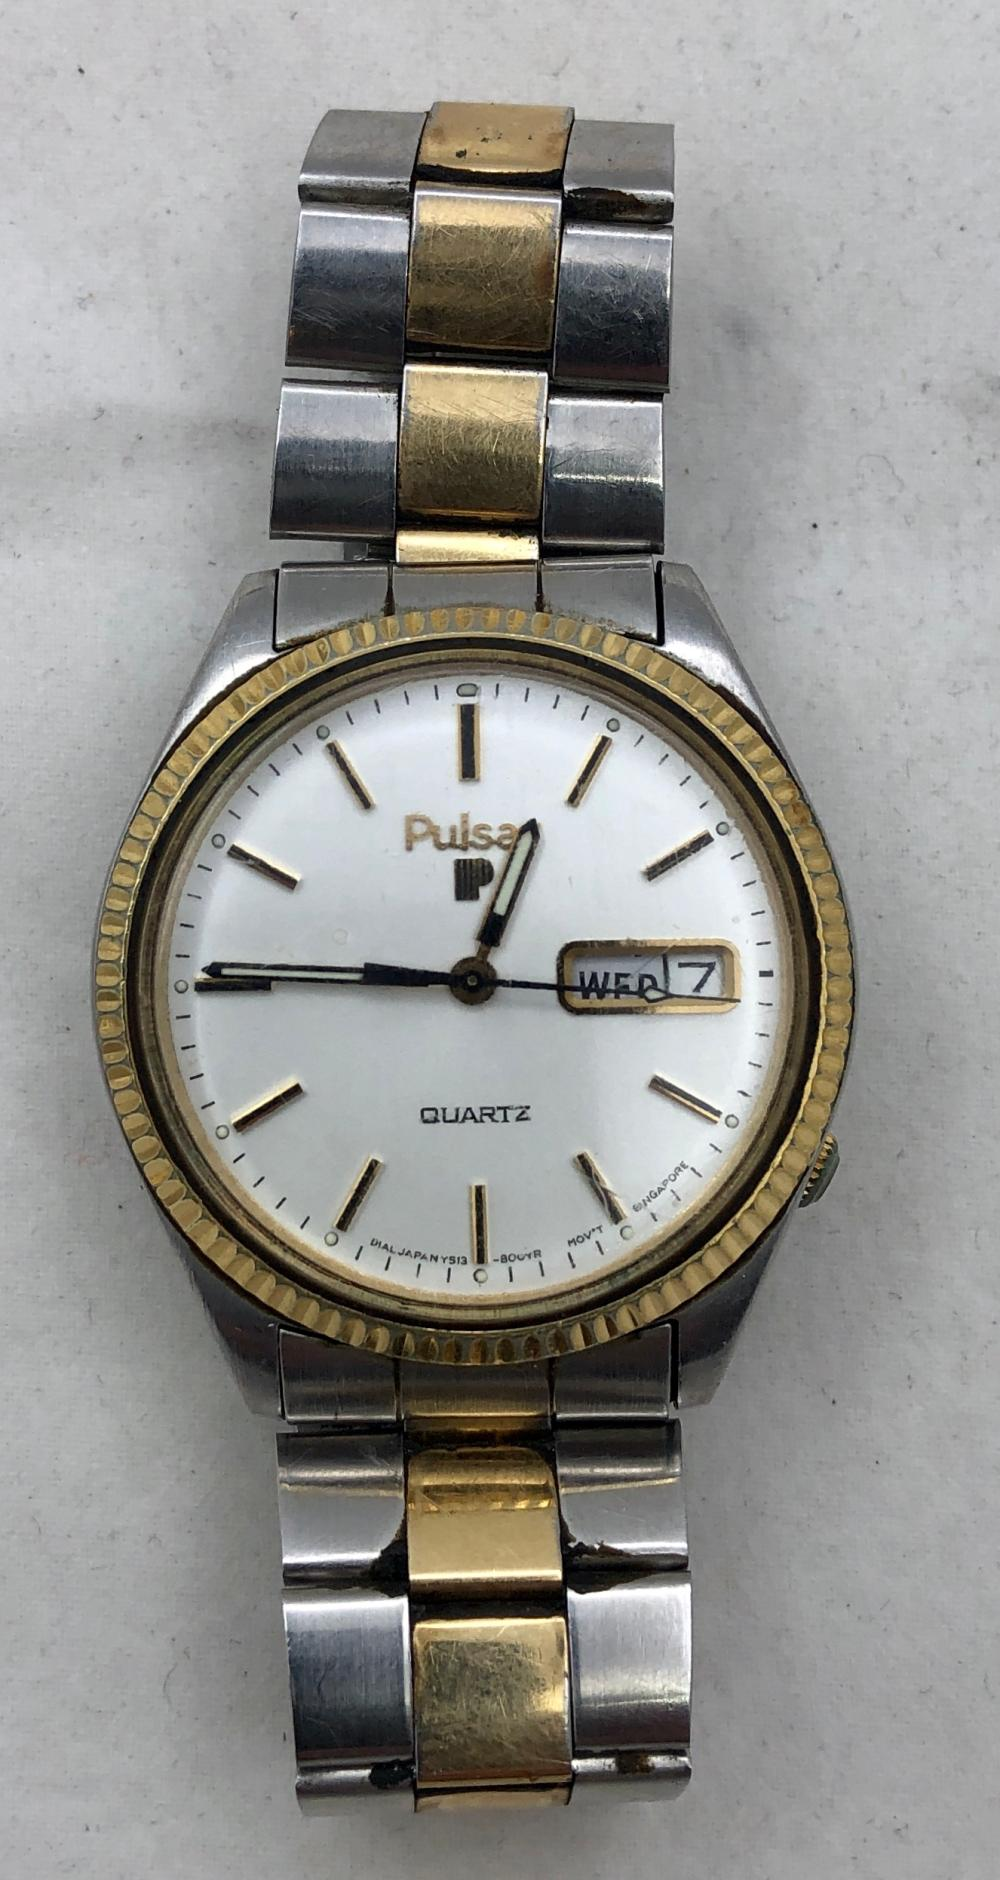 Pulsar Quartz Men's Watch